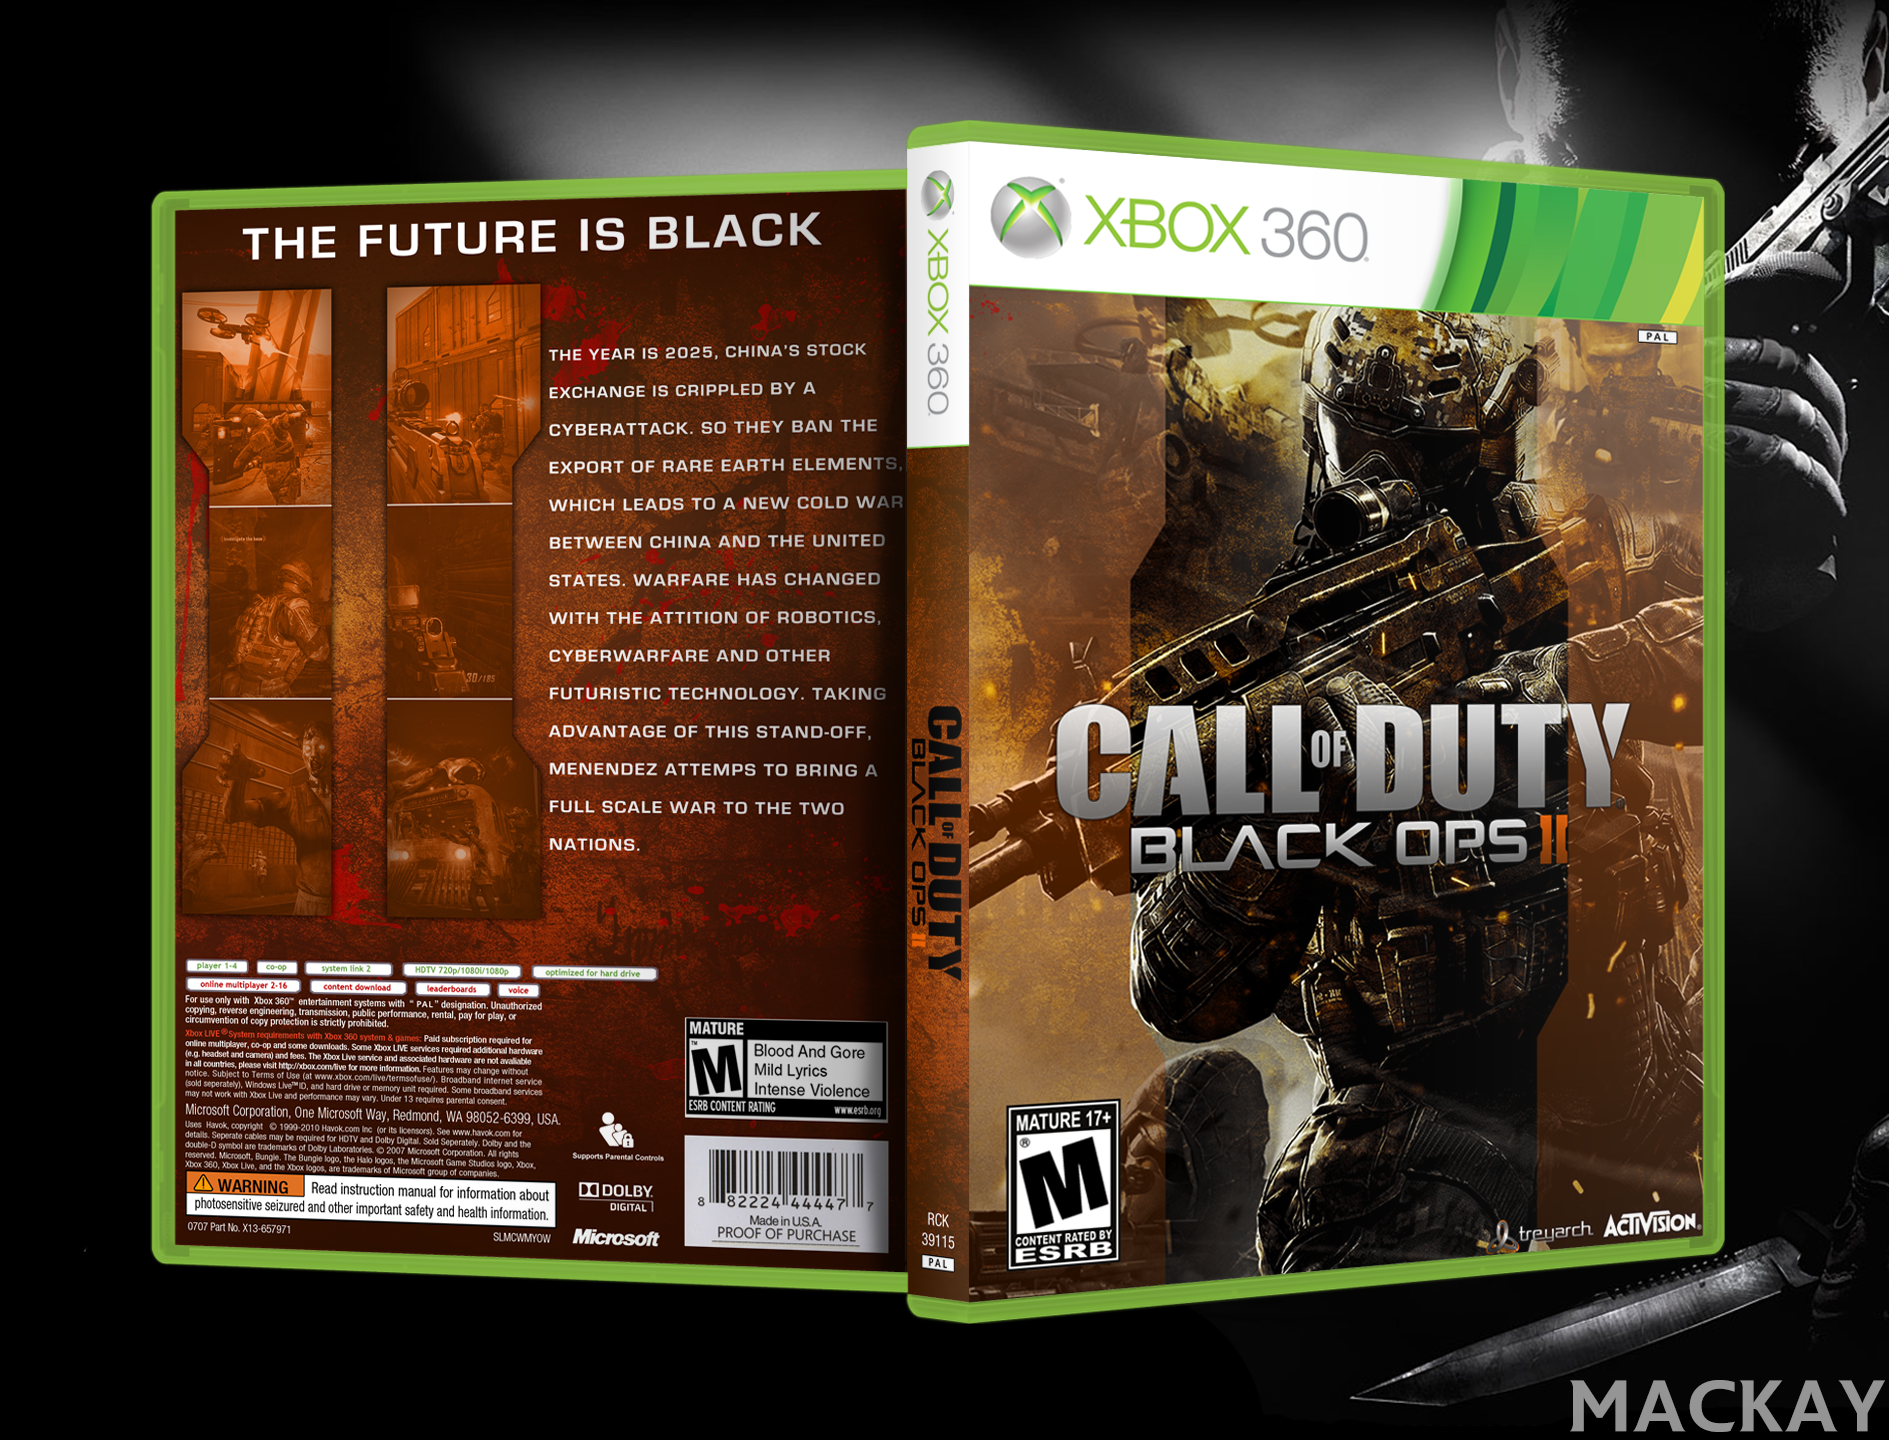 Call Of Duty Black Ops 2 box cover